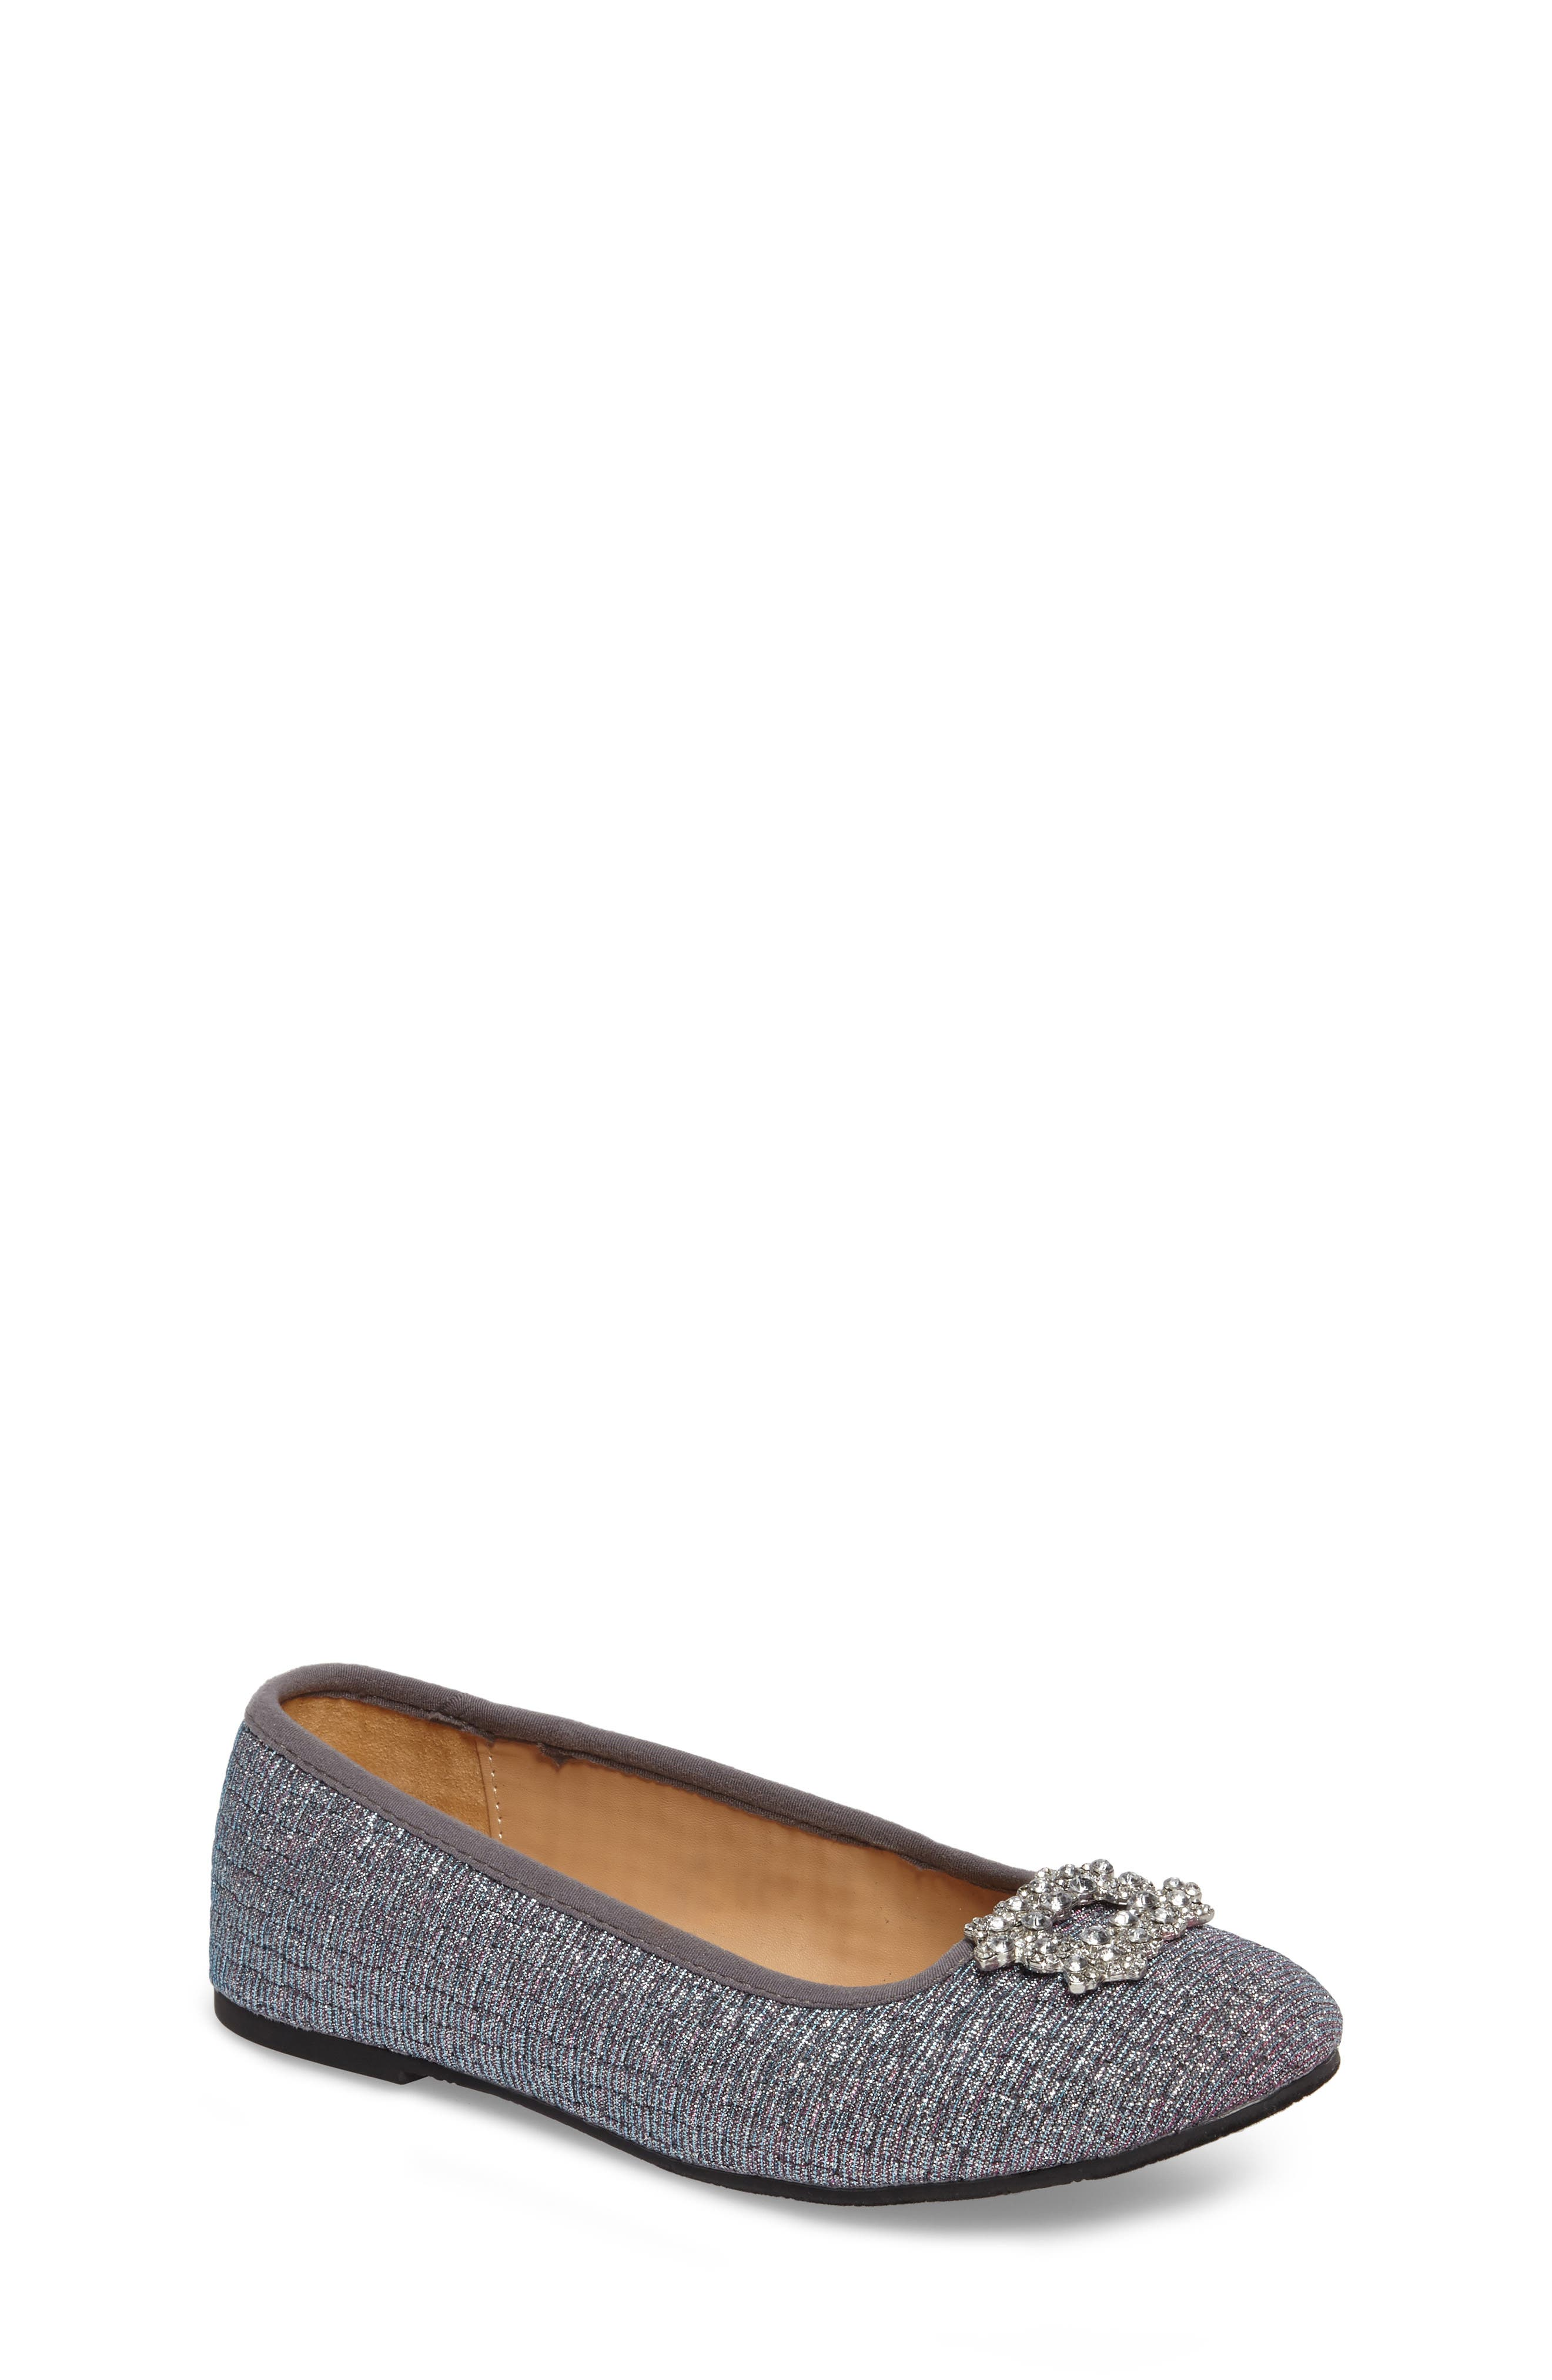 Alternate Image 1 Selected - Badgley Mischka Amber Nidia Embellished Glitter Flat (Toddler, Little Kid & Big Kid)